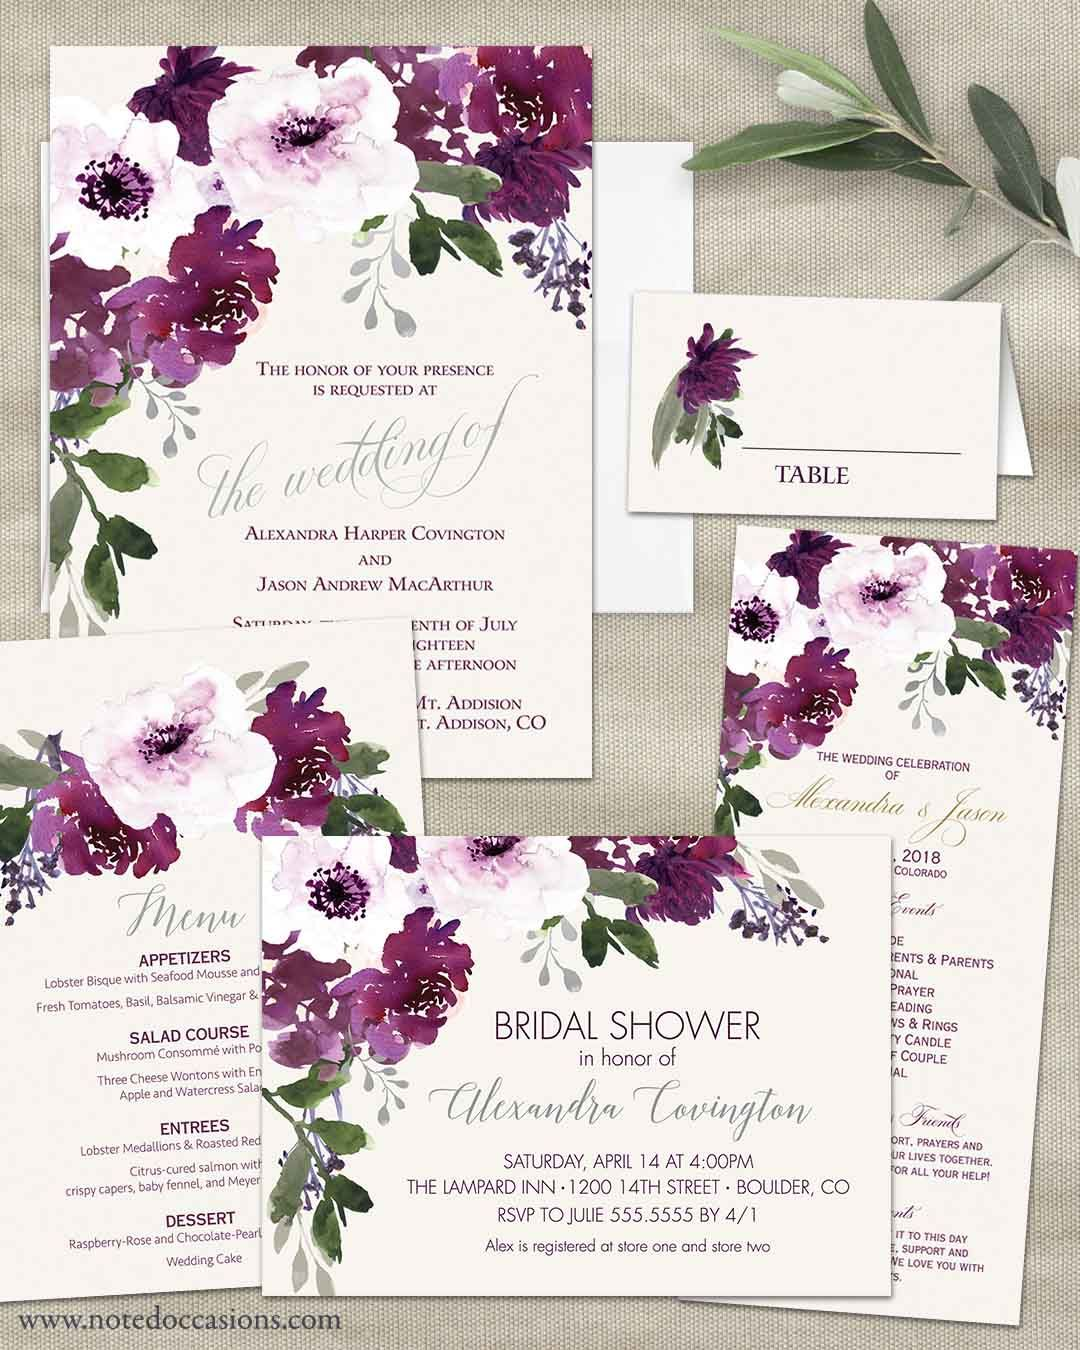 Plum Floral Wedding Invitations Watercolor Greenery With Purple Flowers Boho Chic Wedding Invitations Watercolor Wedding Invitations Plum Wedding Invitations